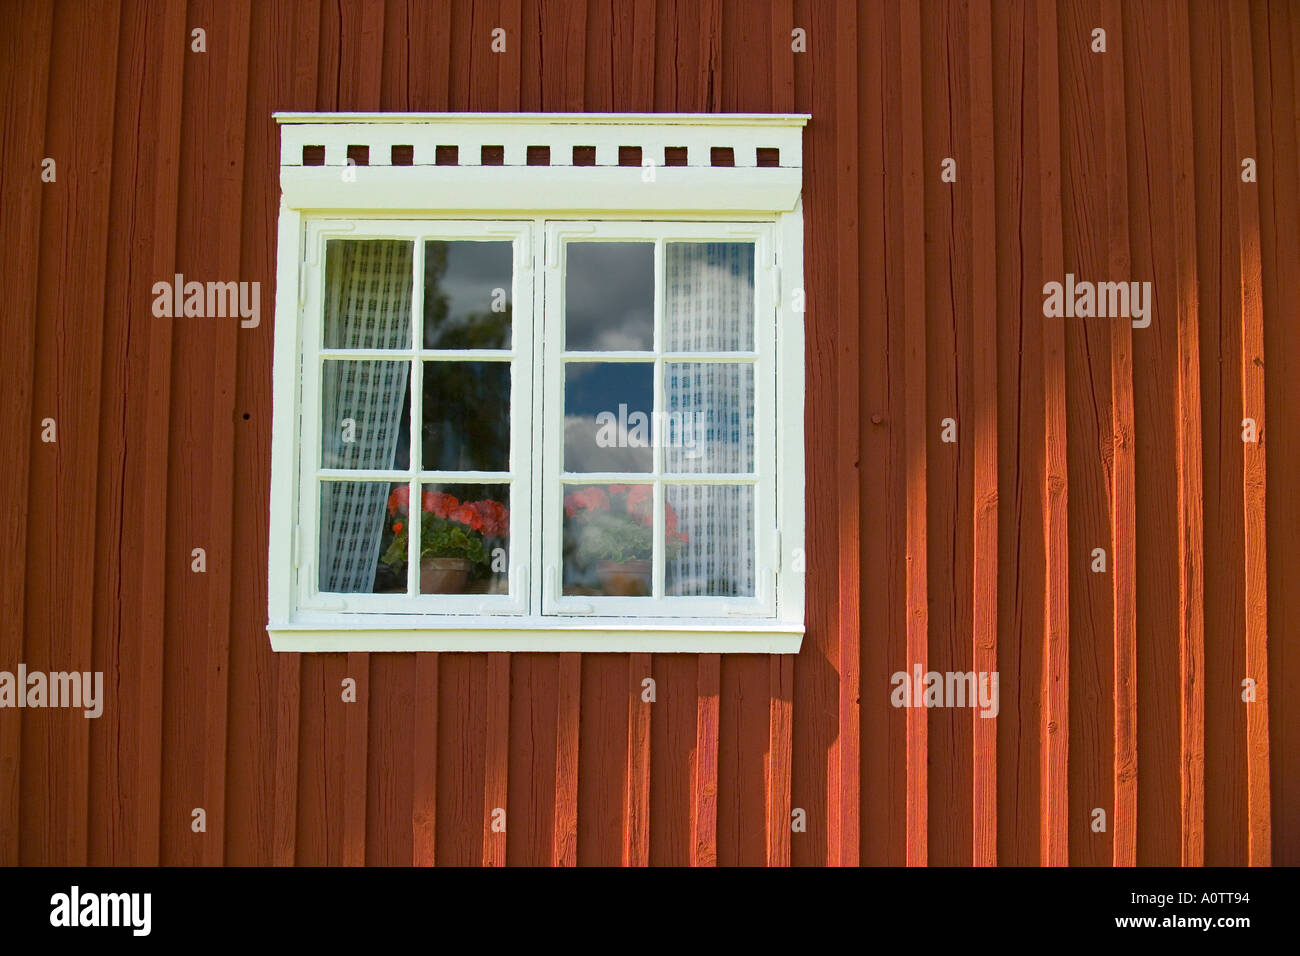 Window of a Traditional Finnish House at Kvarntorp near Torsby in Varmland County Sweden - Stock Image